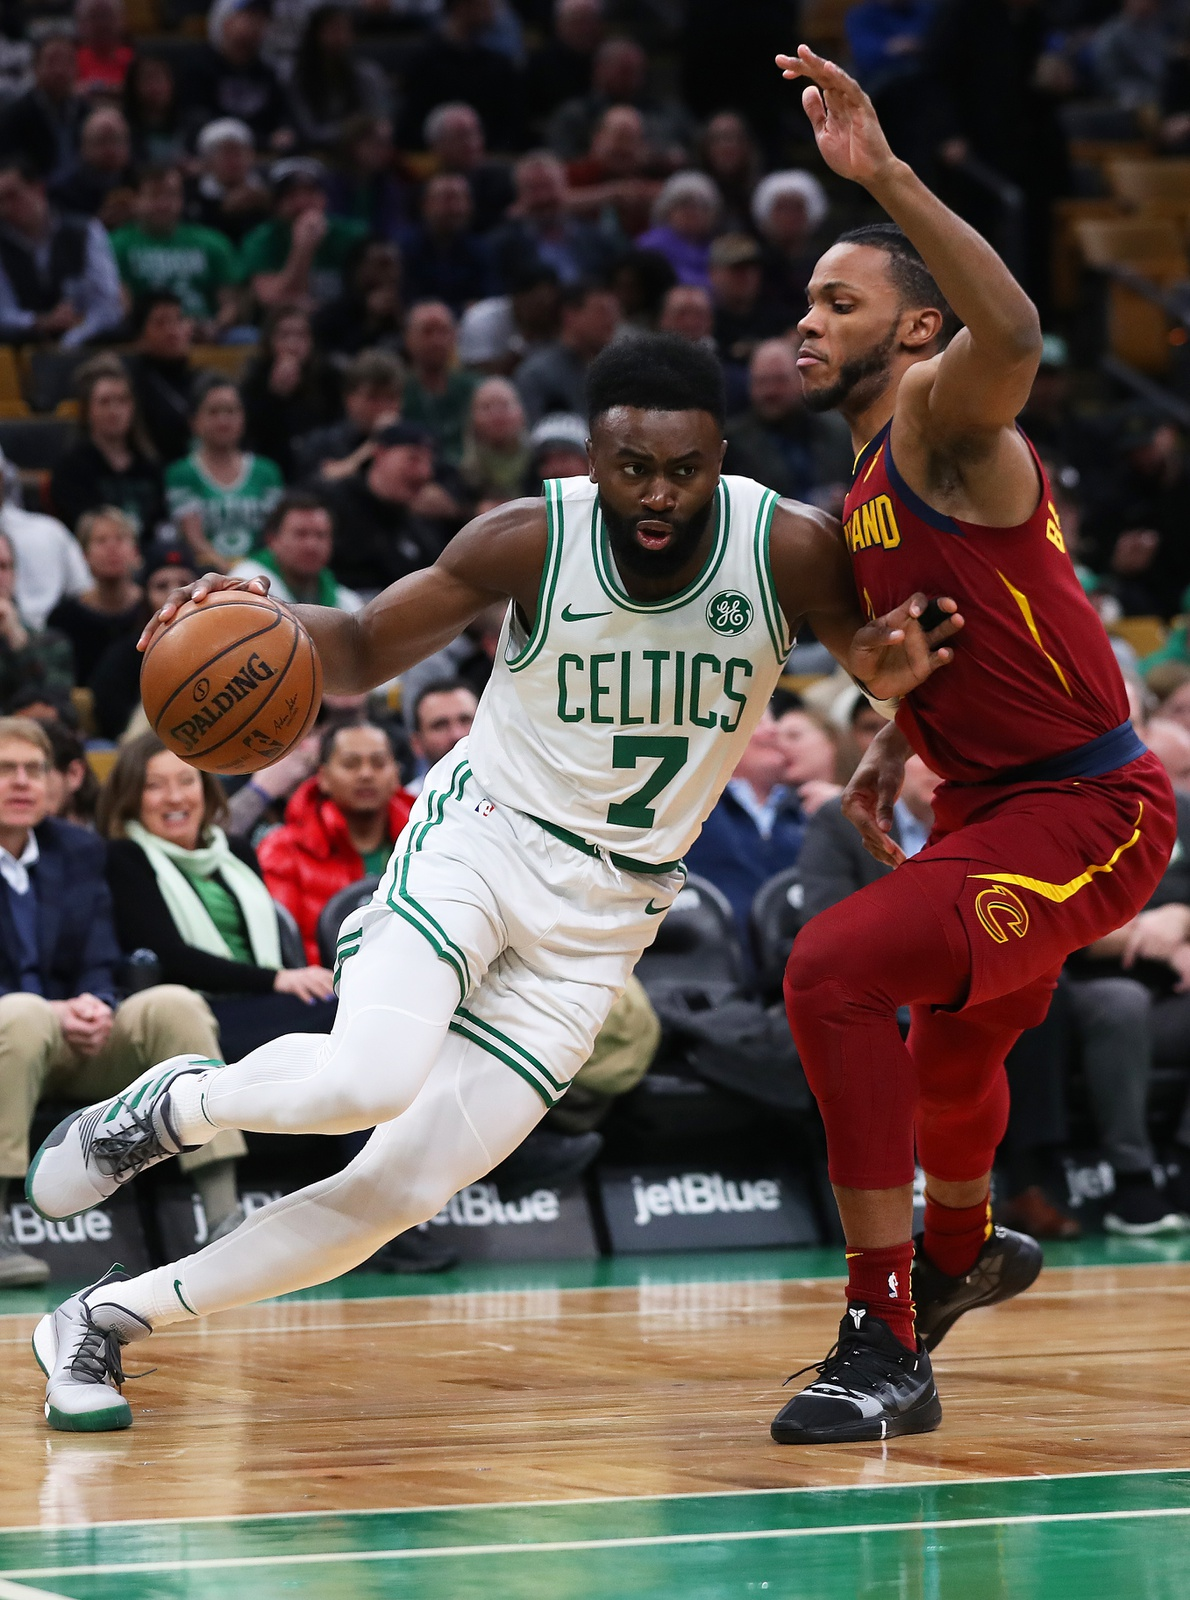 750082c84160 Jaylen Brown  7 of the Boston Celtics drives against Jaron Blossomgame  4  of the